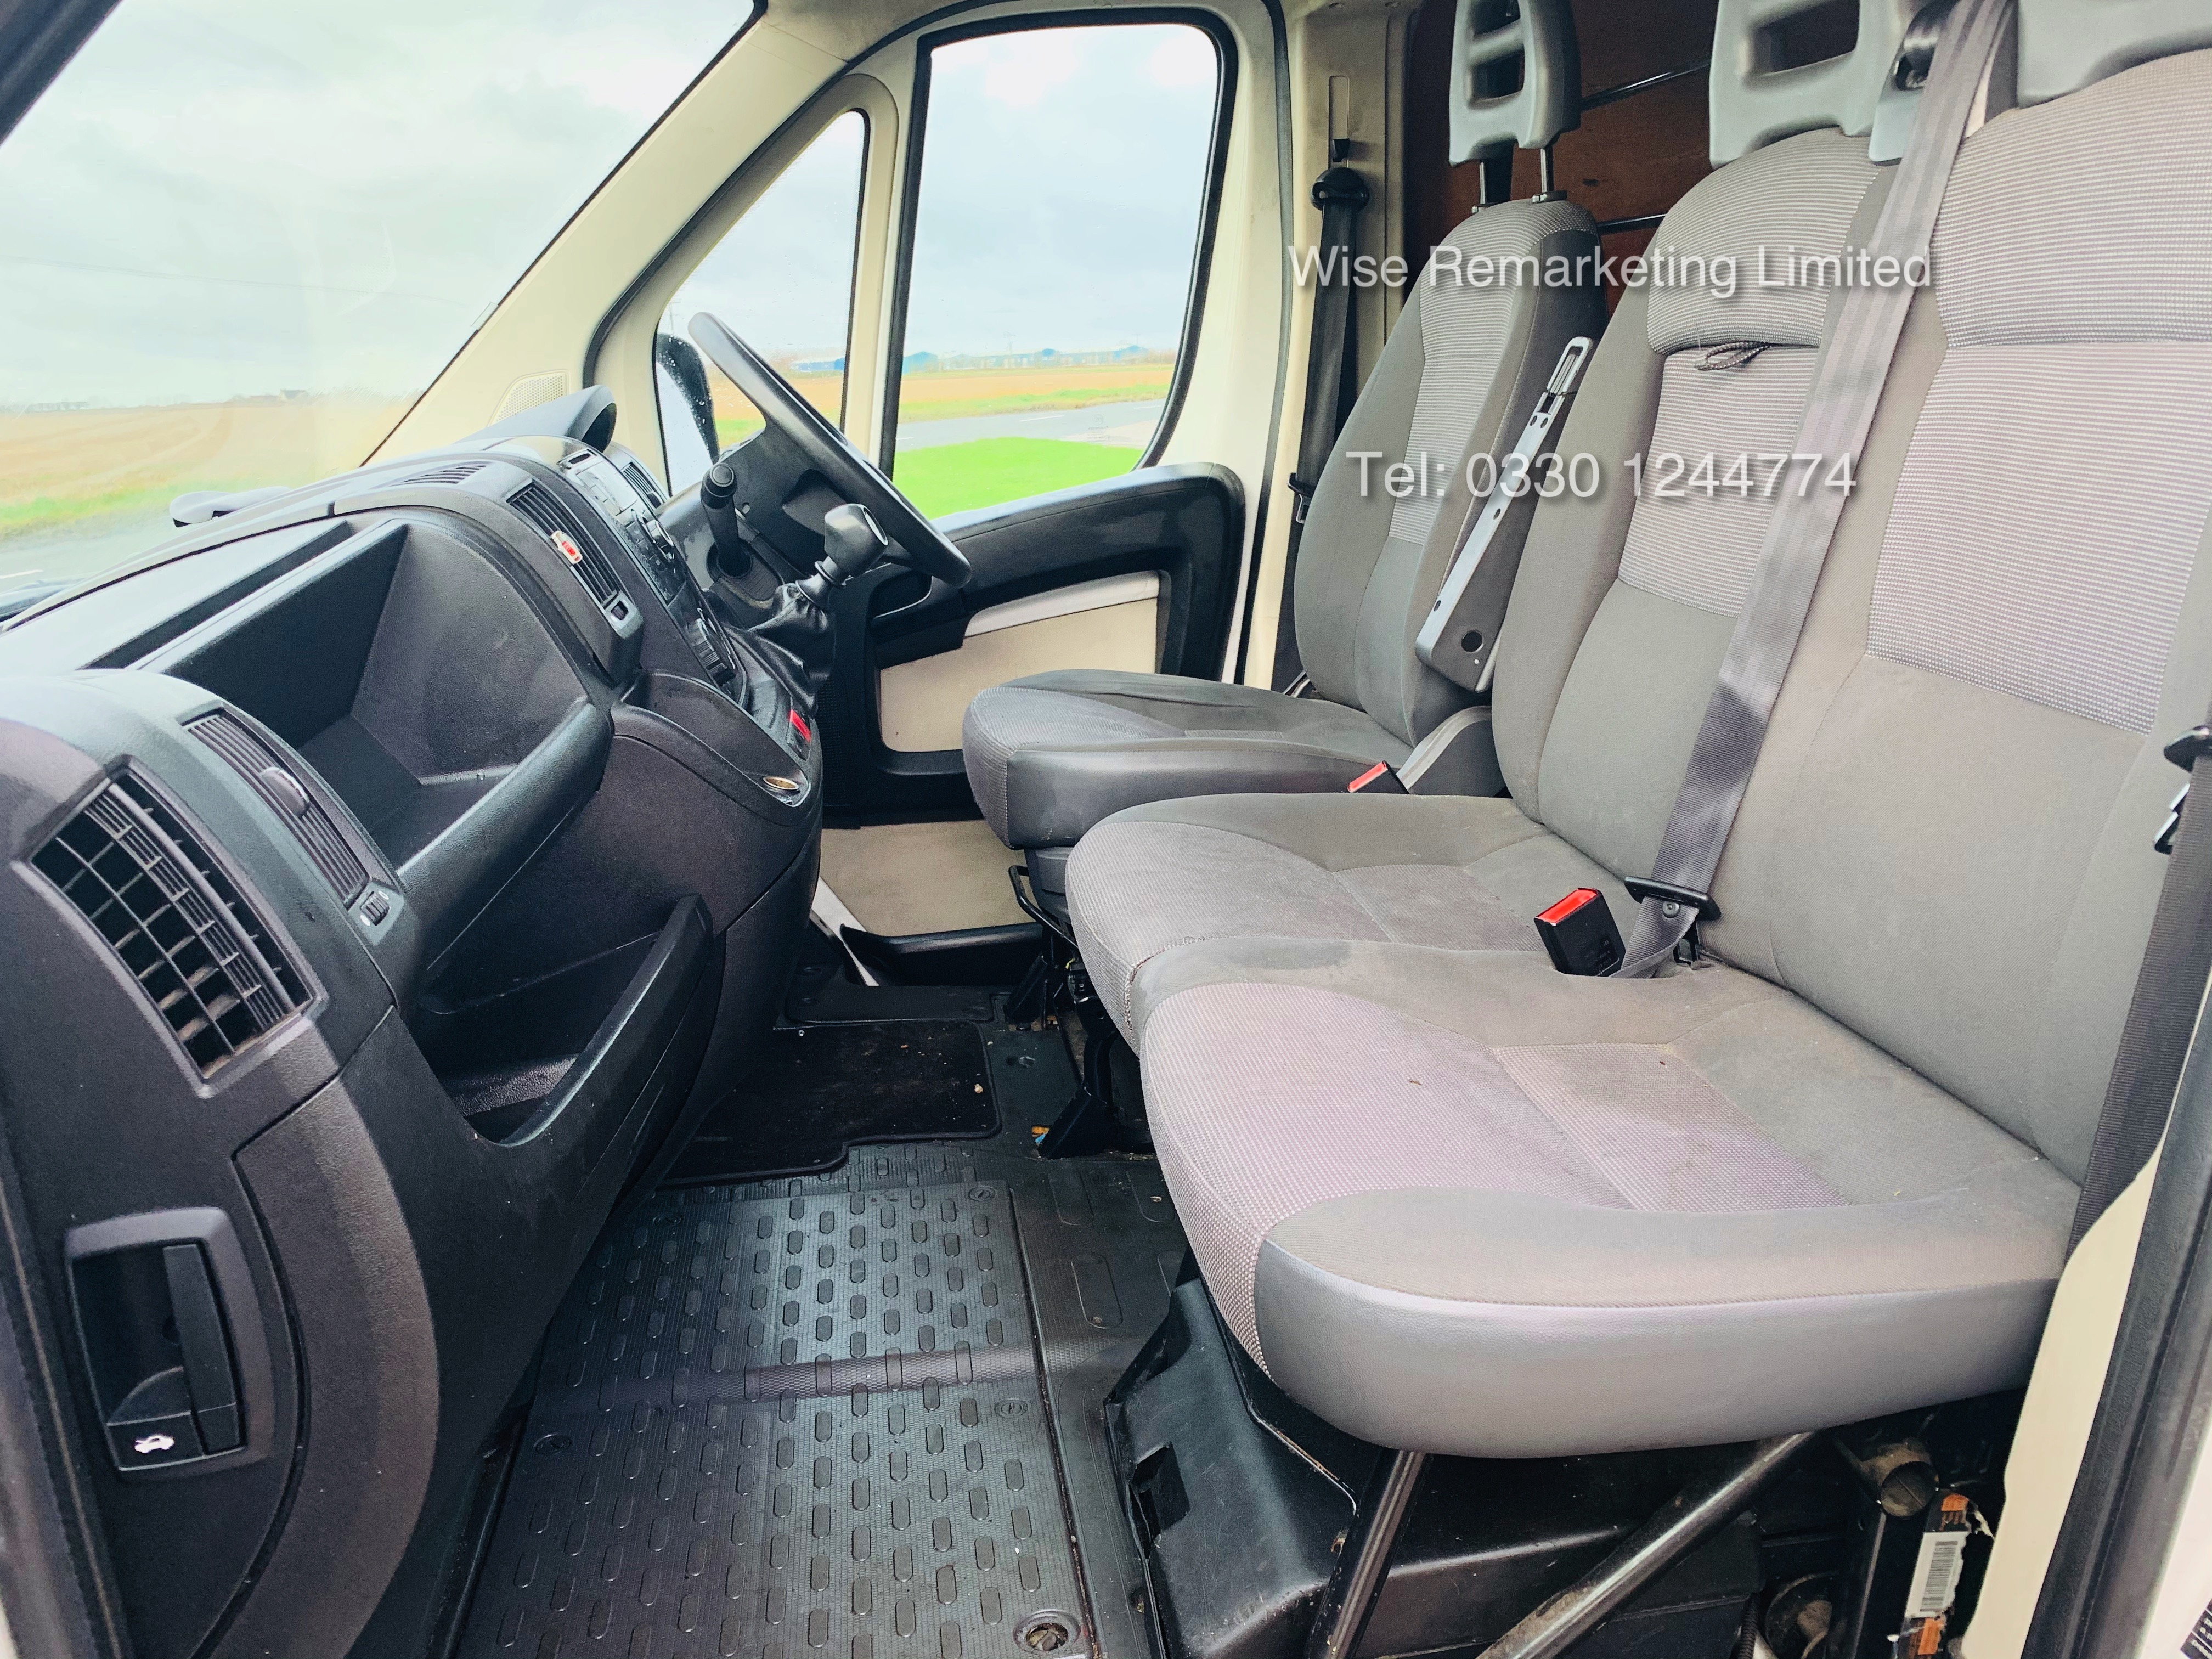 Peugeot Boxer 335 2.2 HDi Long Wheel Base( L3H2) 2014 Model - 1 Keeper From New - Image 10 of 17